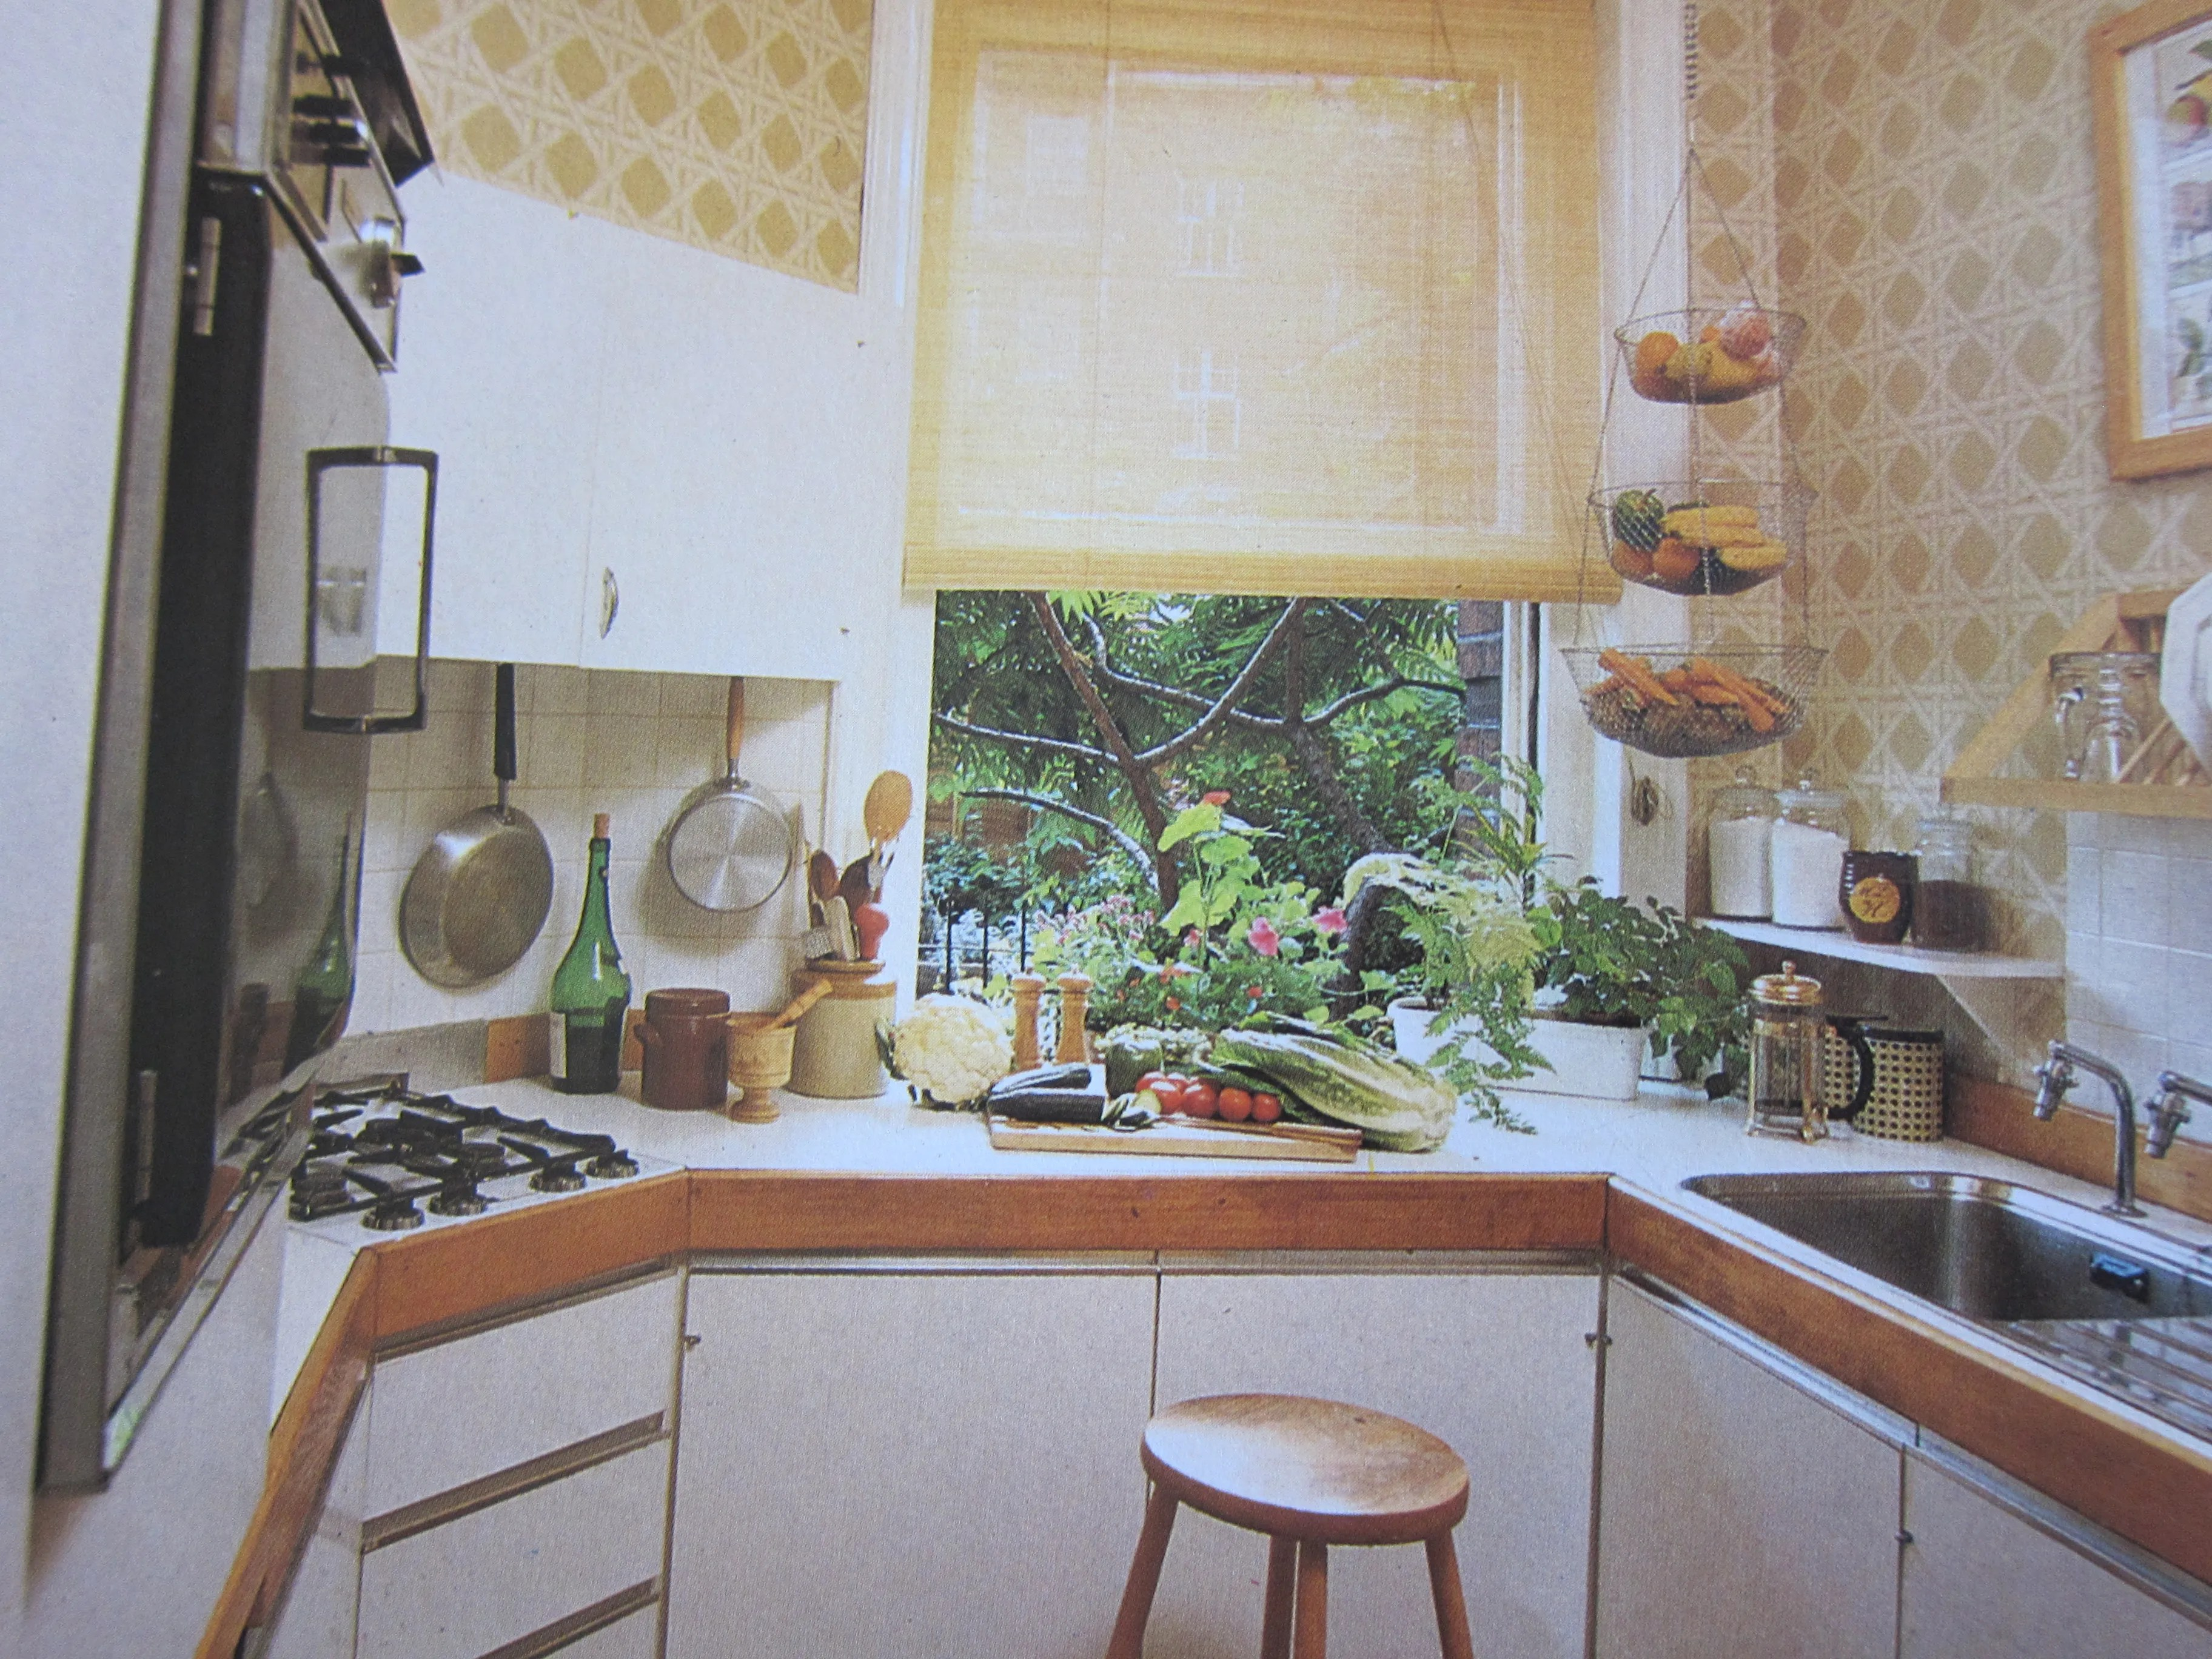 Interior Design Time Warp #2 – The 1980s – Interiors For Families